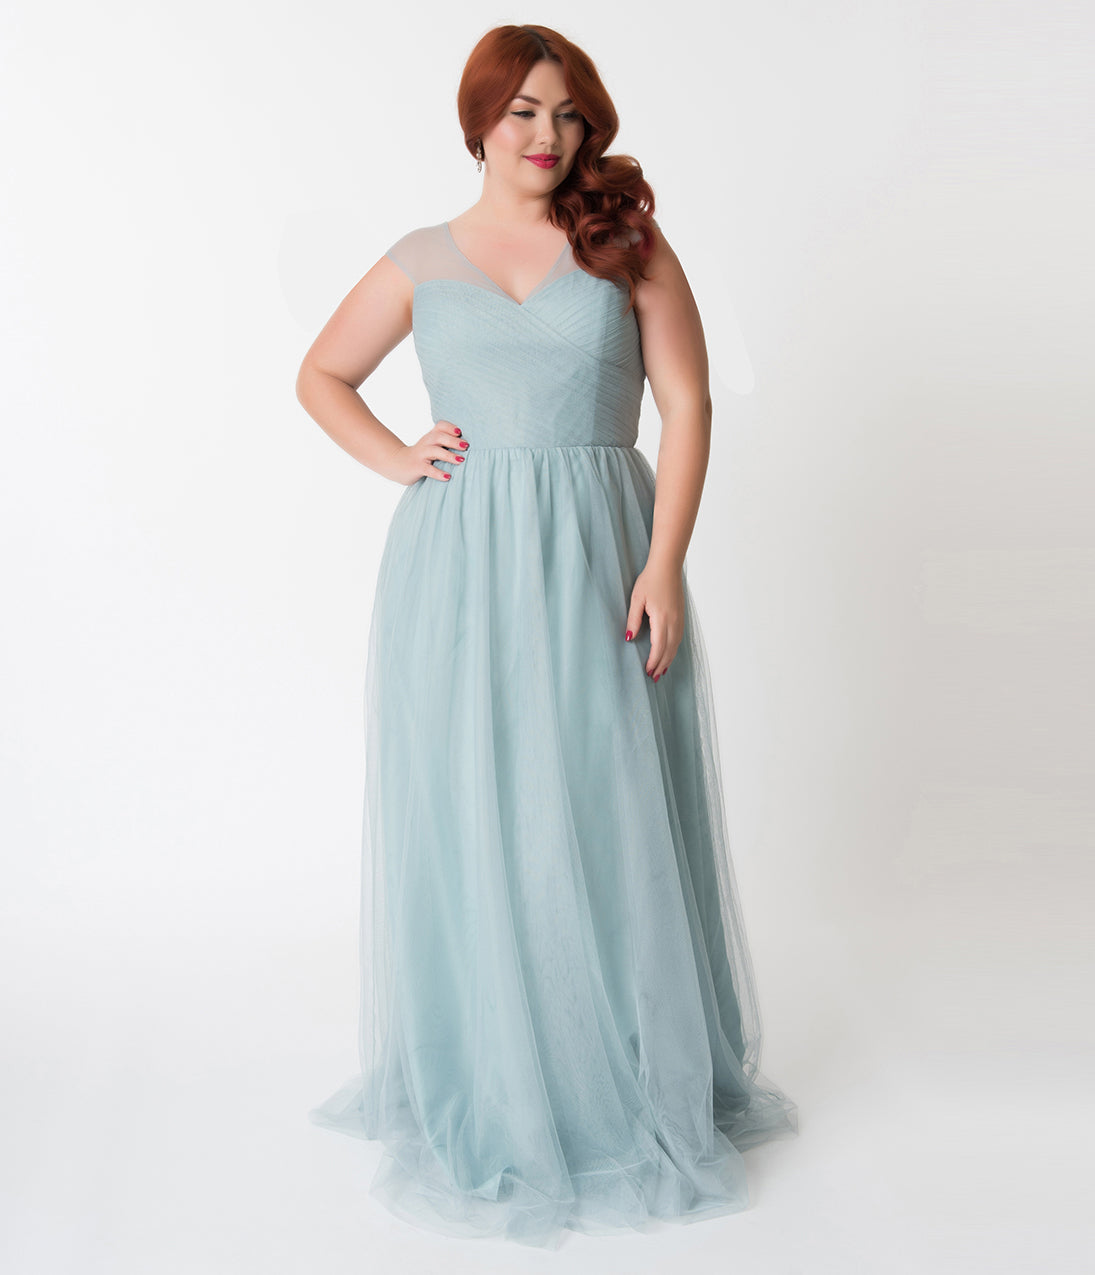 1950s Plus Size Dresses, Swing Dresses Plus Size Robin Blue Mesh Wrapped Sweetheart Neckline Long Dress $110.00 AT vintagedancer.com